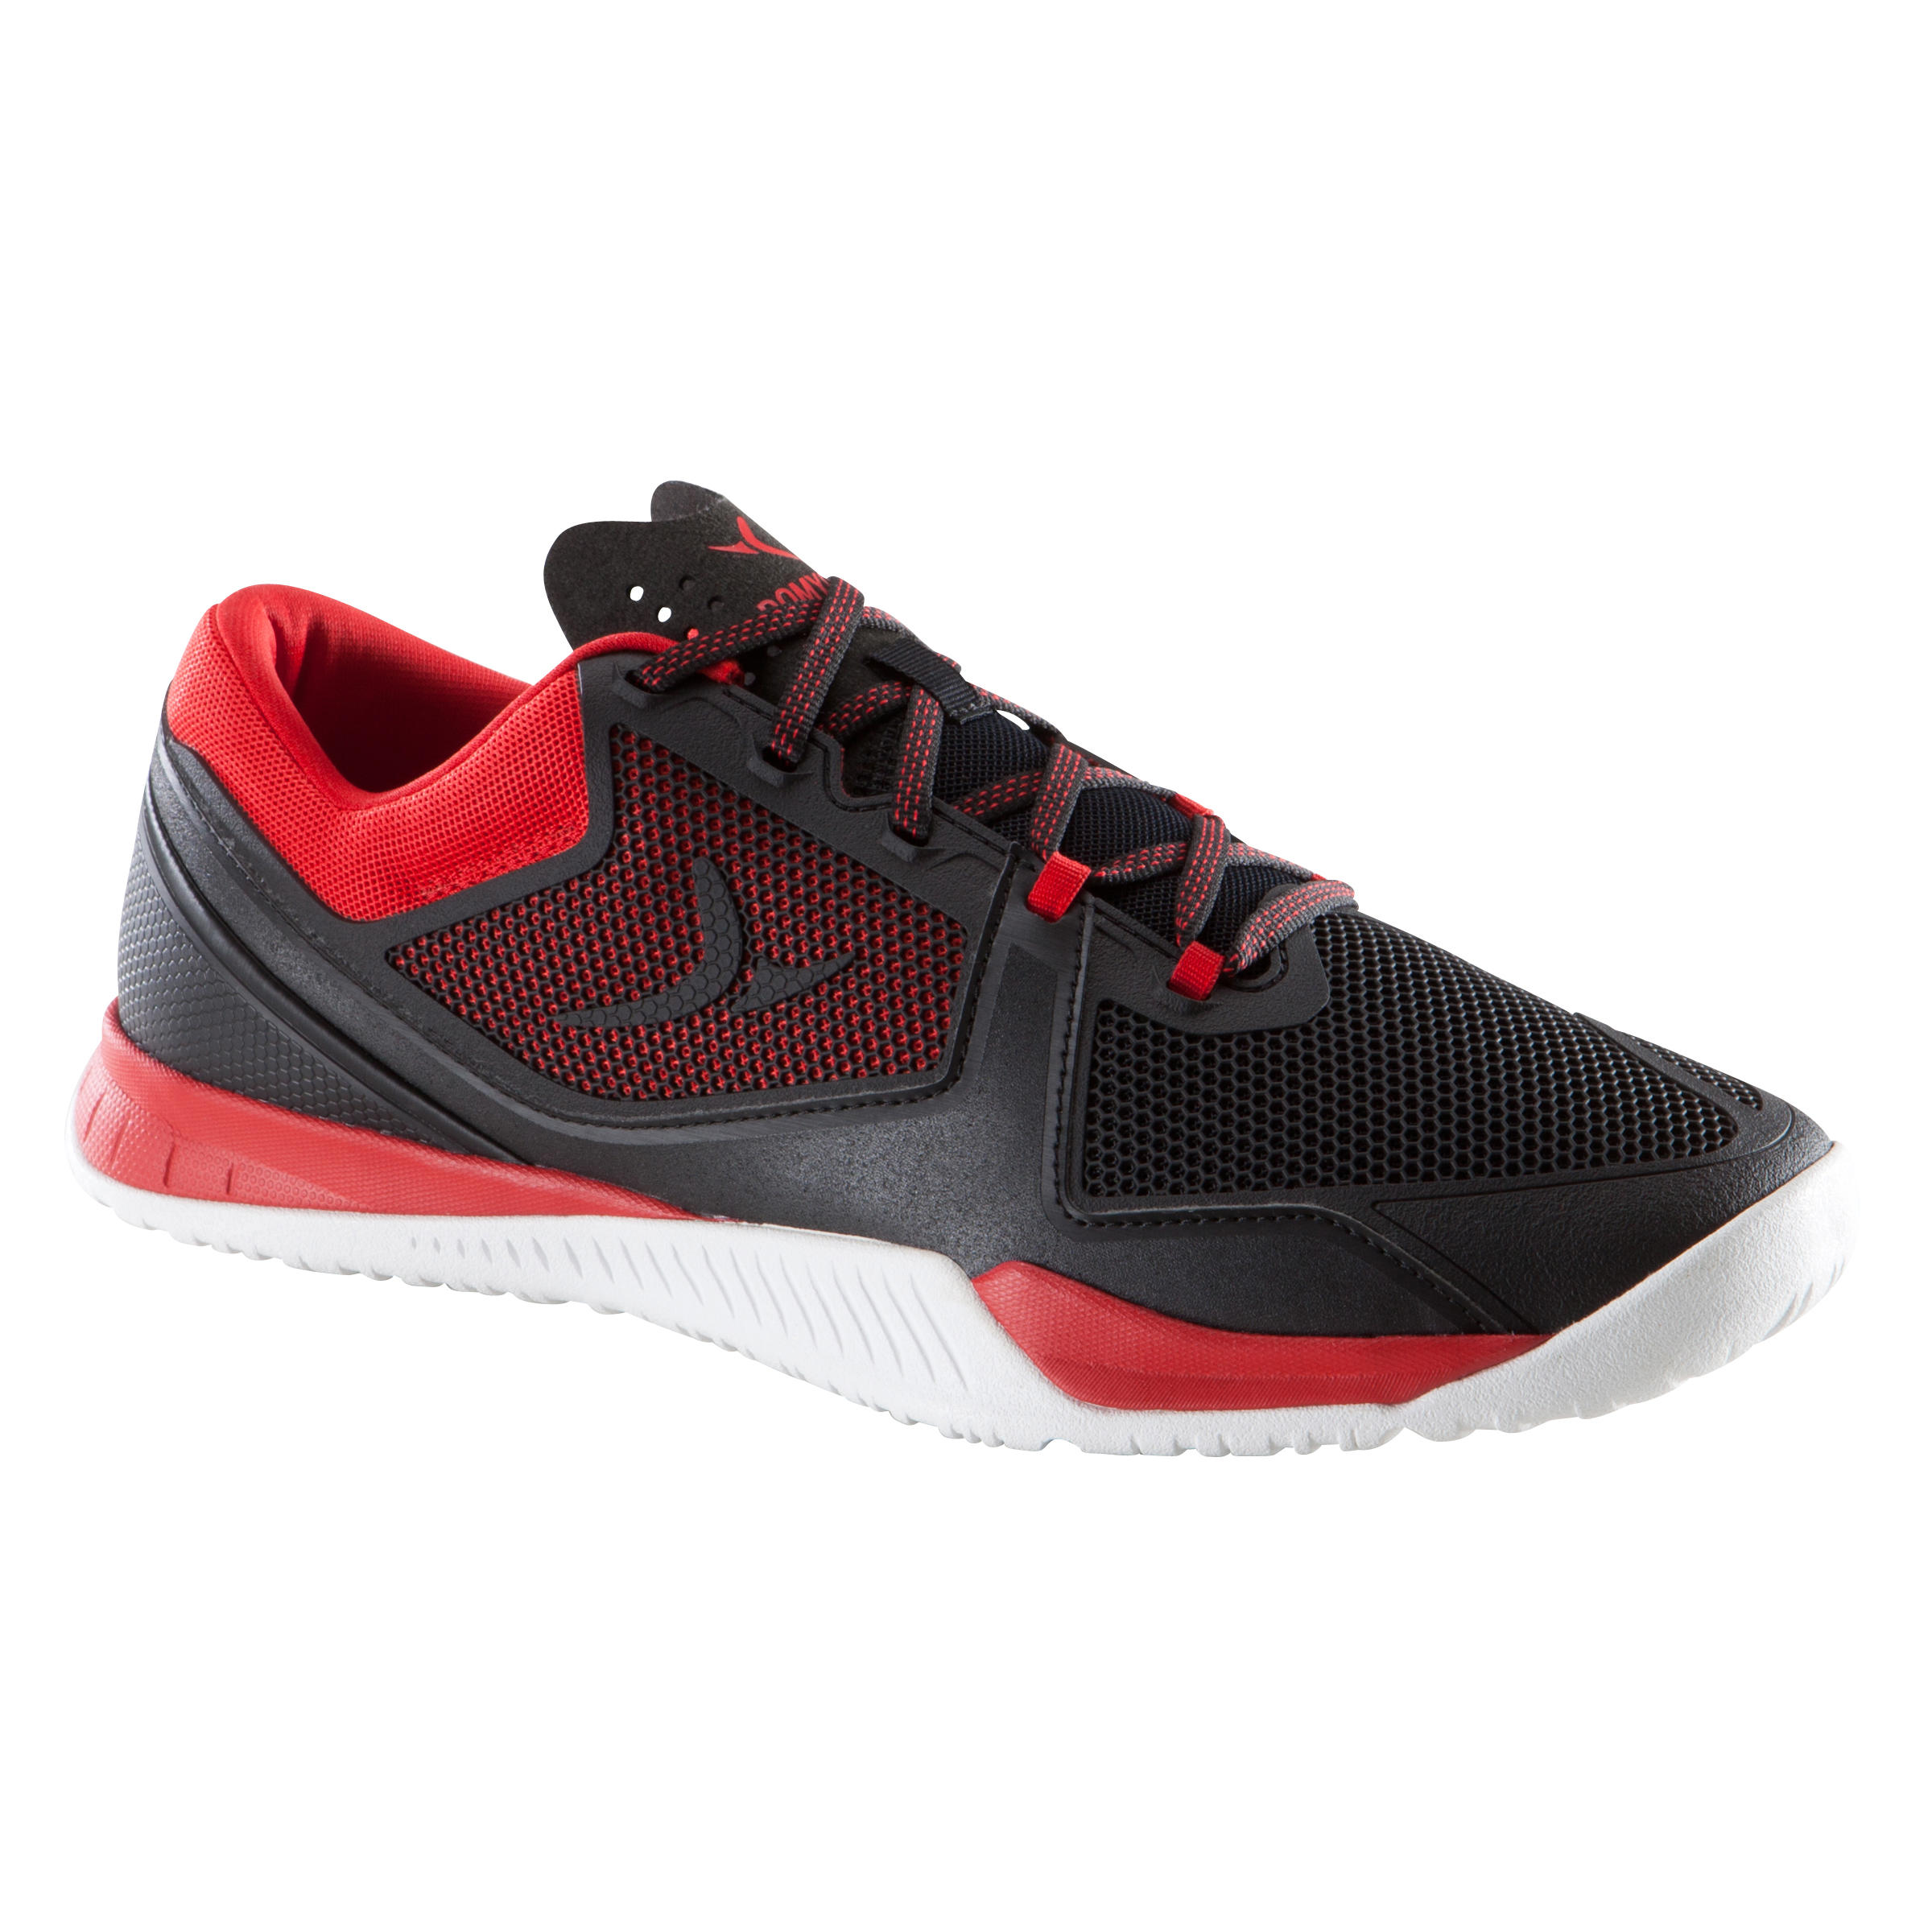 Tenis de cross training hombre negro y rojo Strong 900